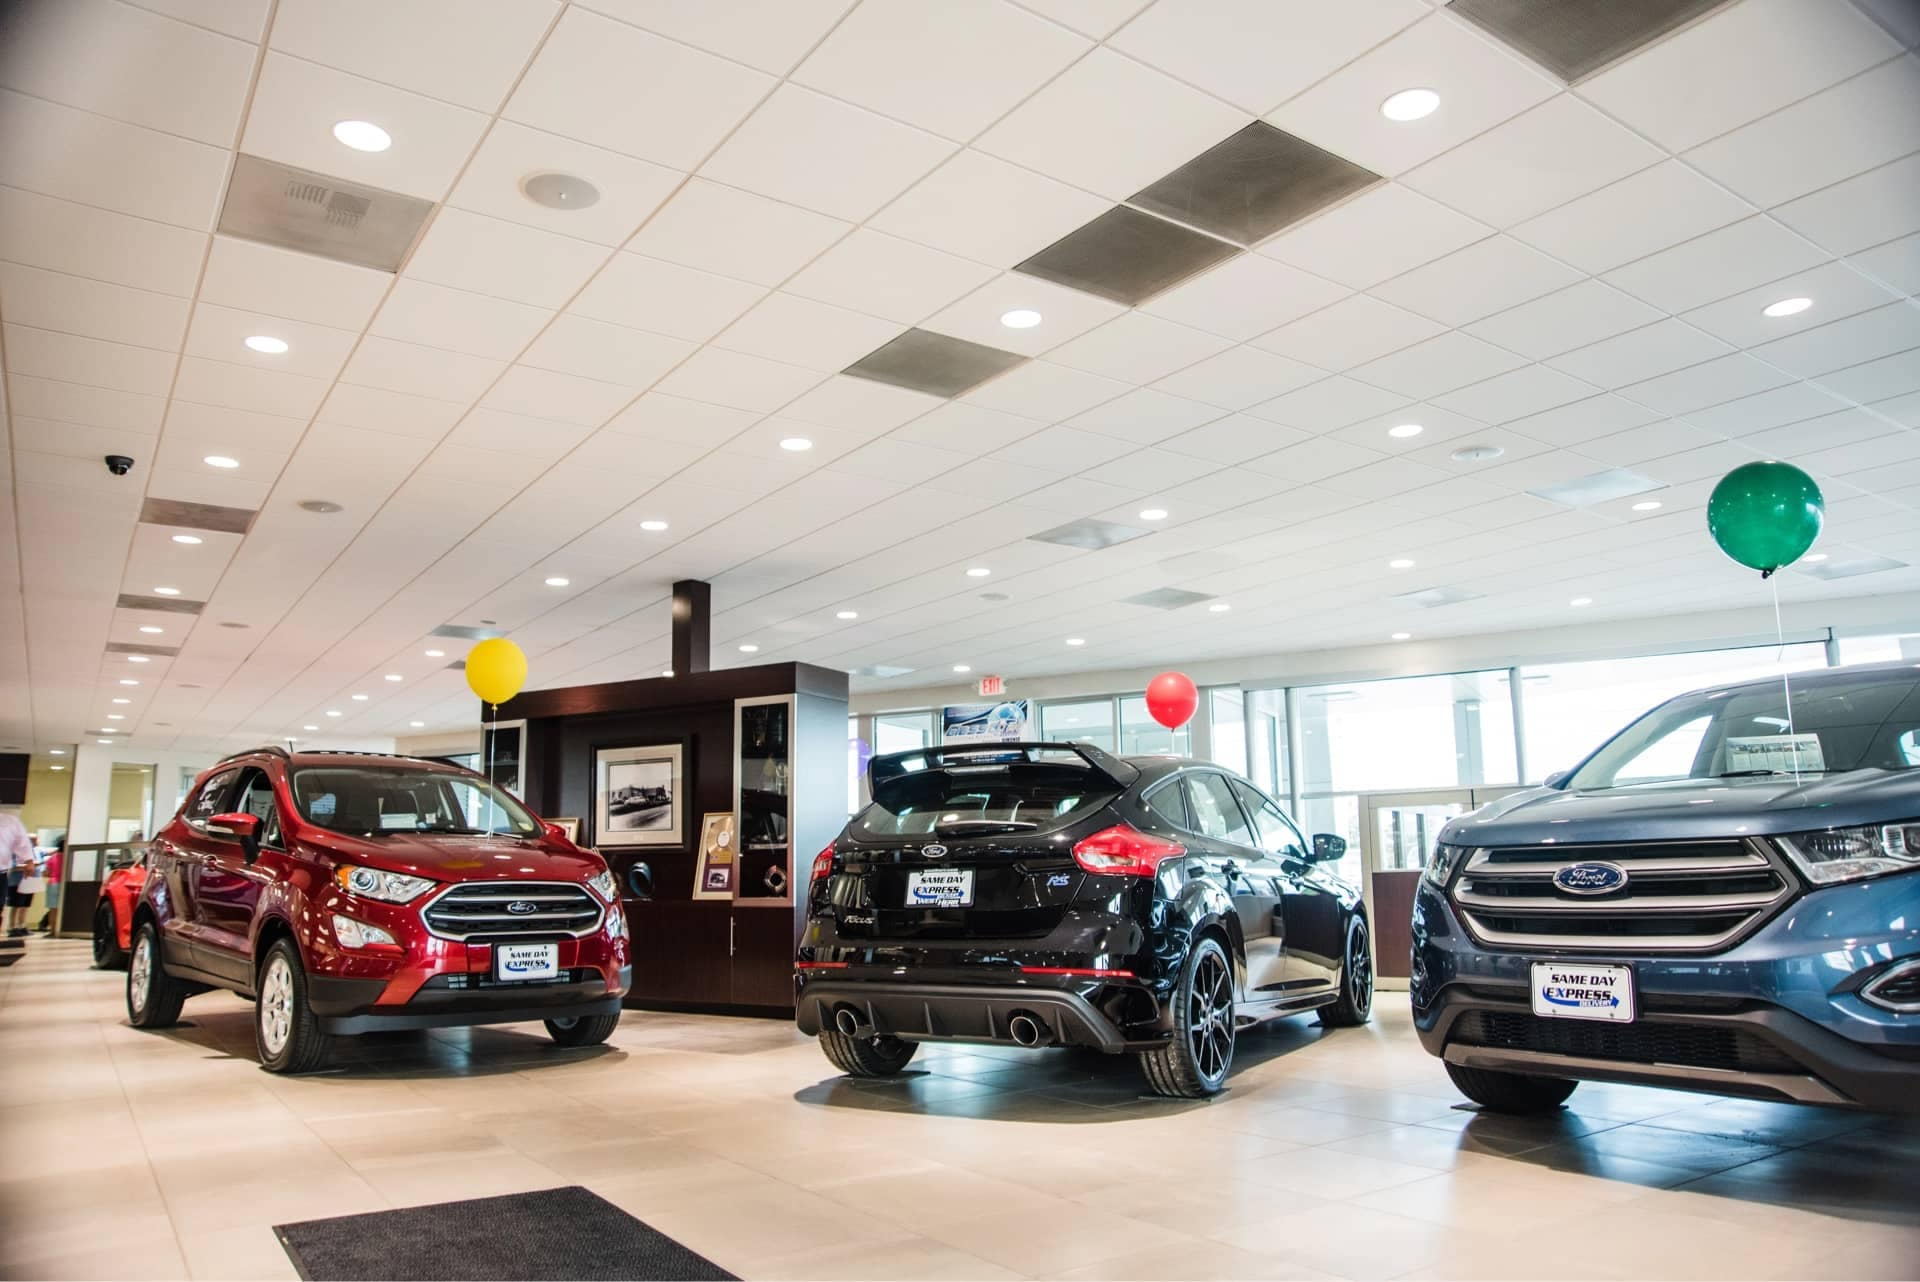 Inside view of the dealership